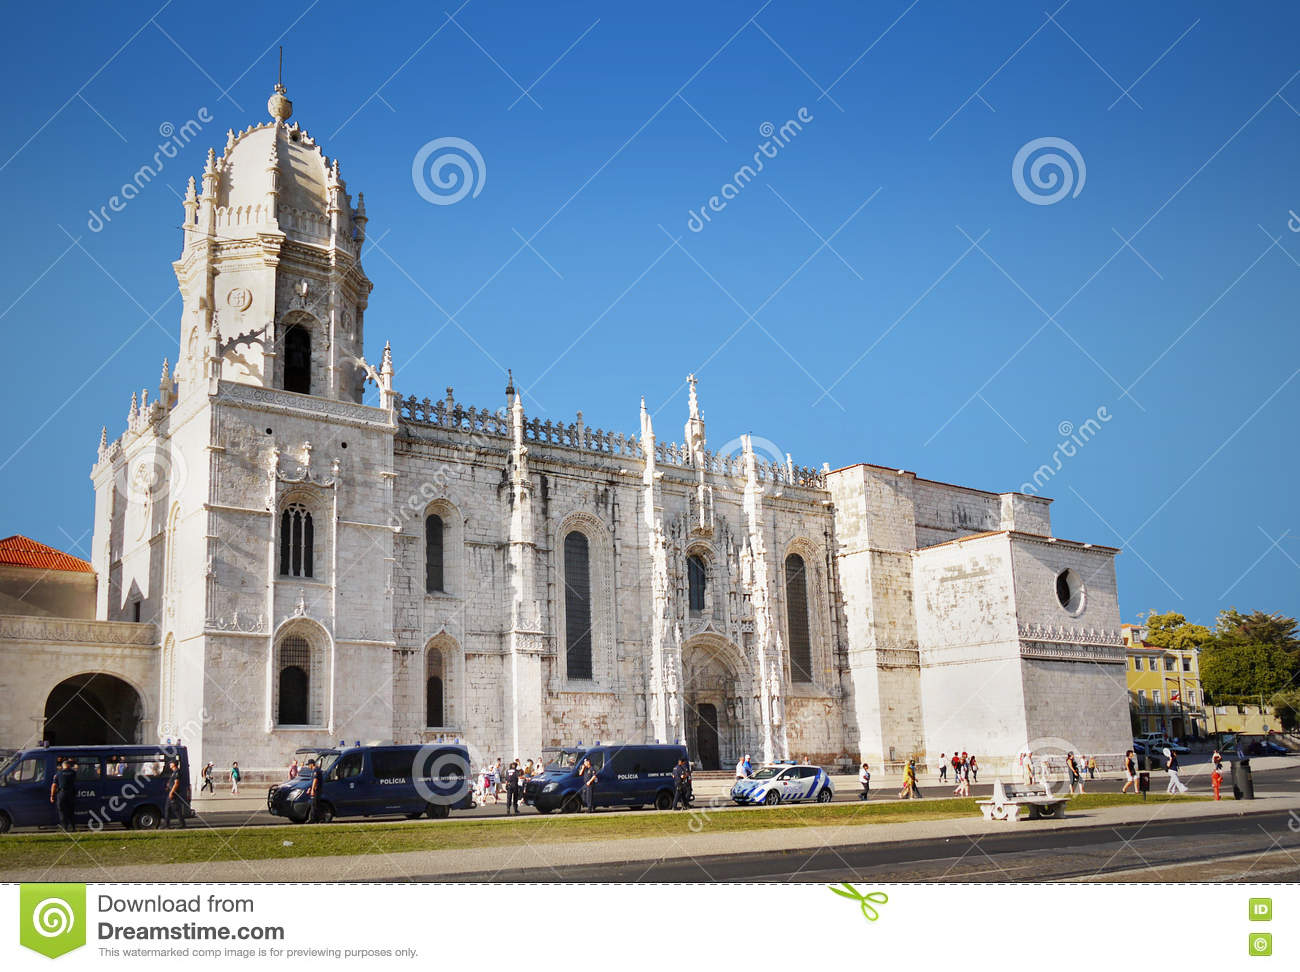 dating sites lisbon portugal Lisbon tours and things to do: check out viator's reviews and photos of lisbon tours.